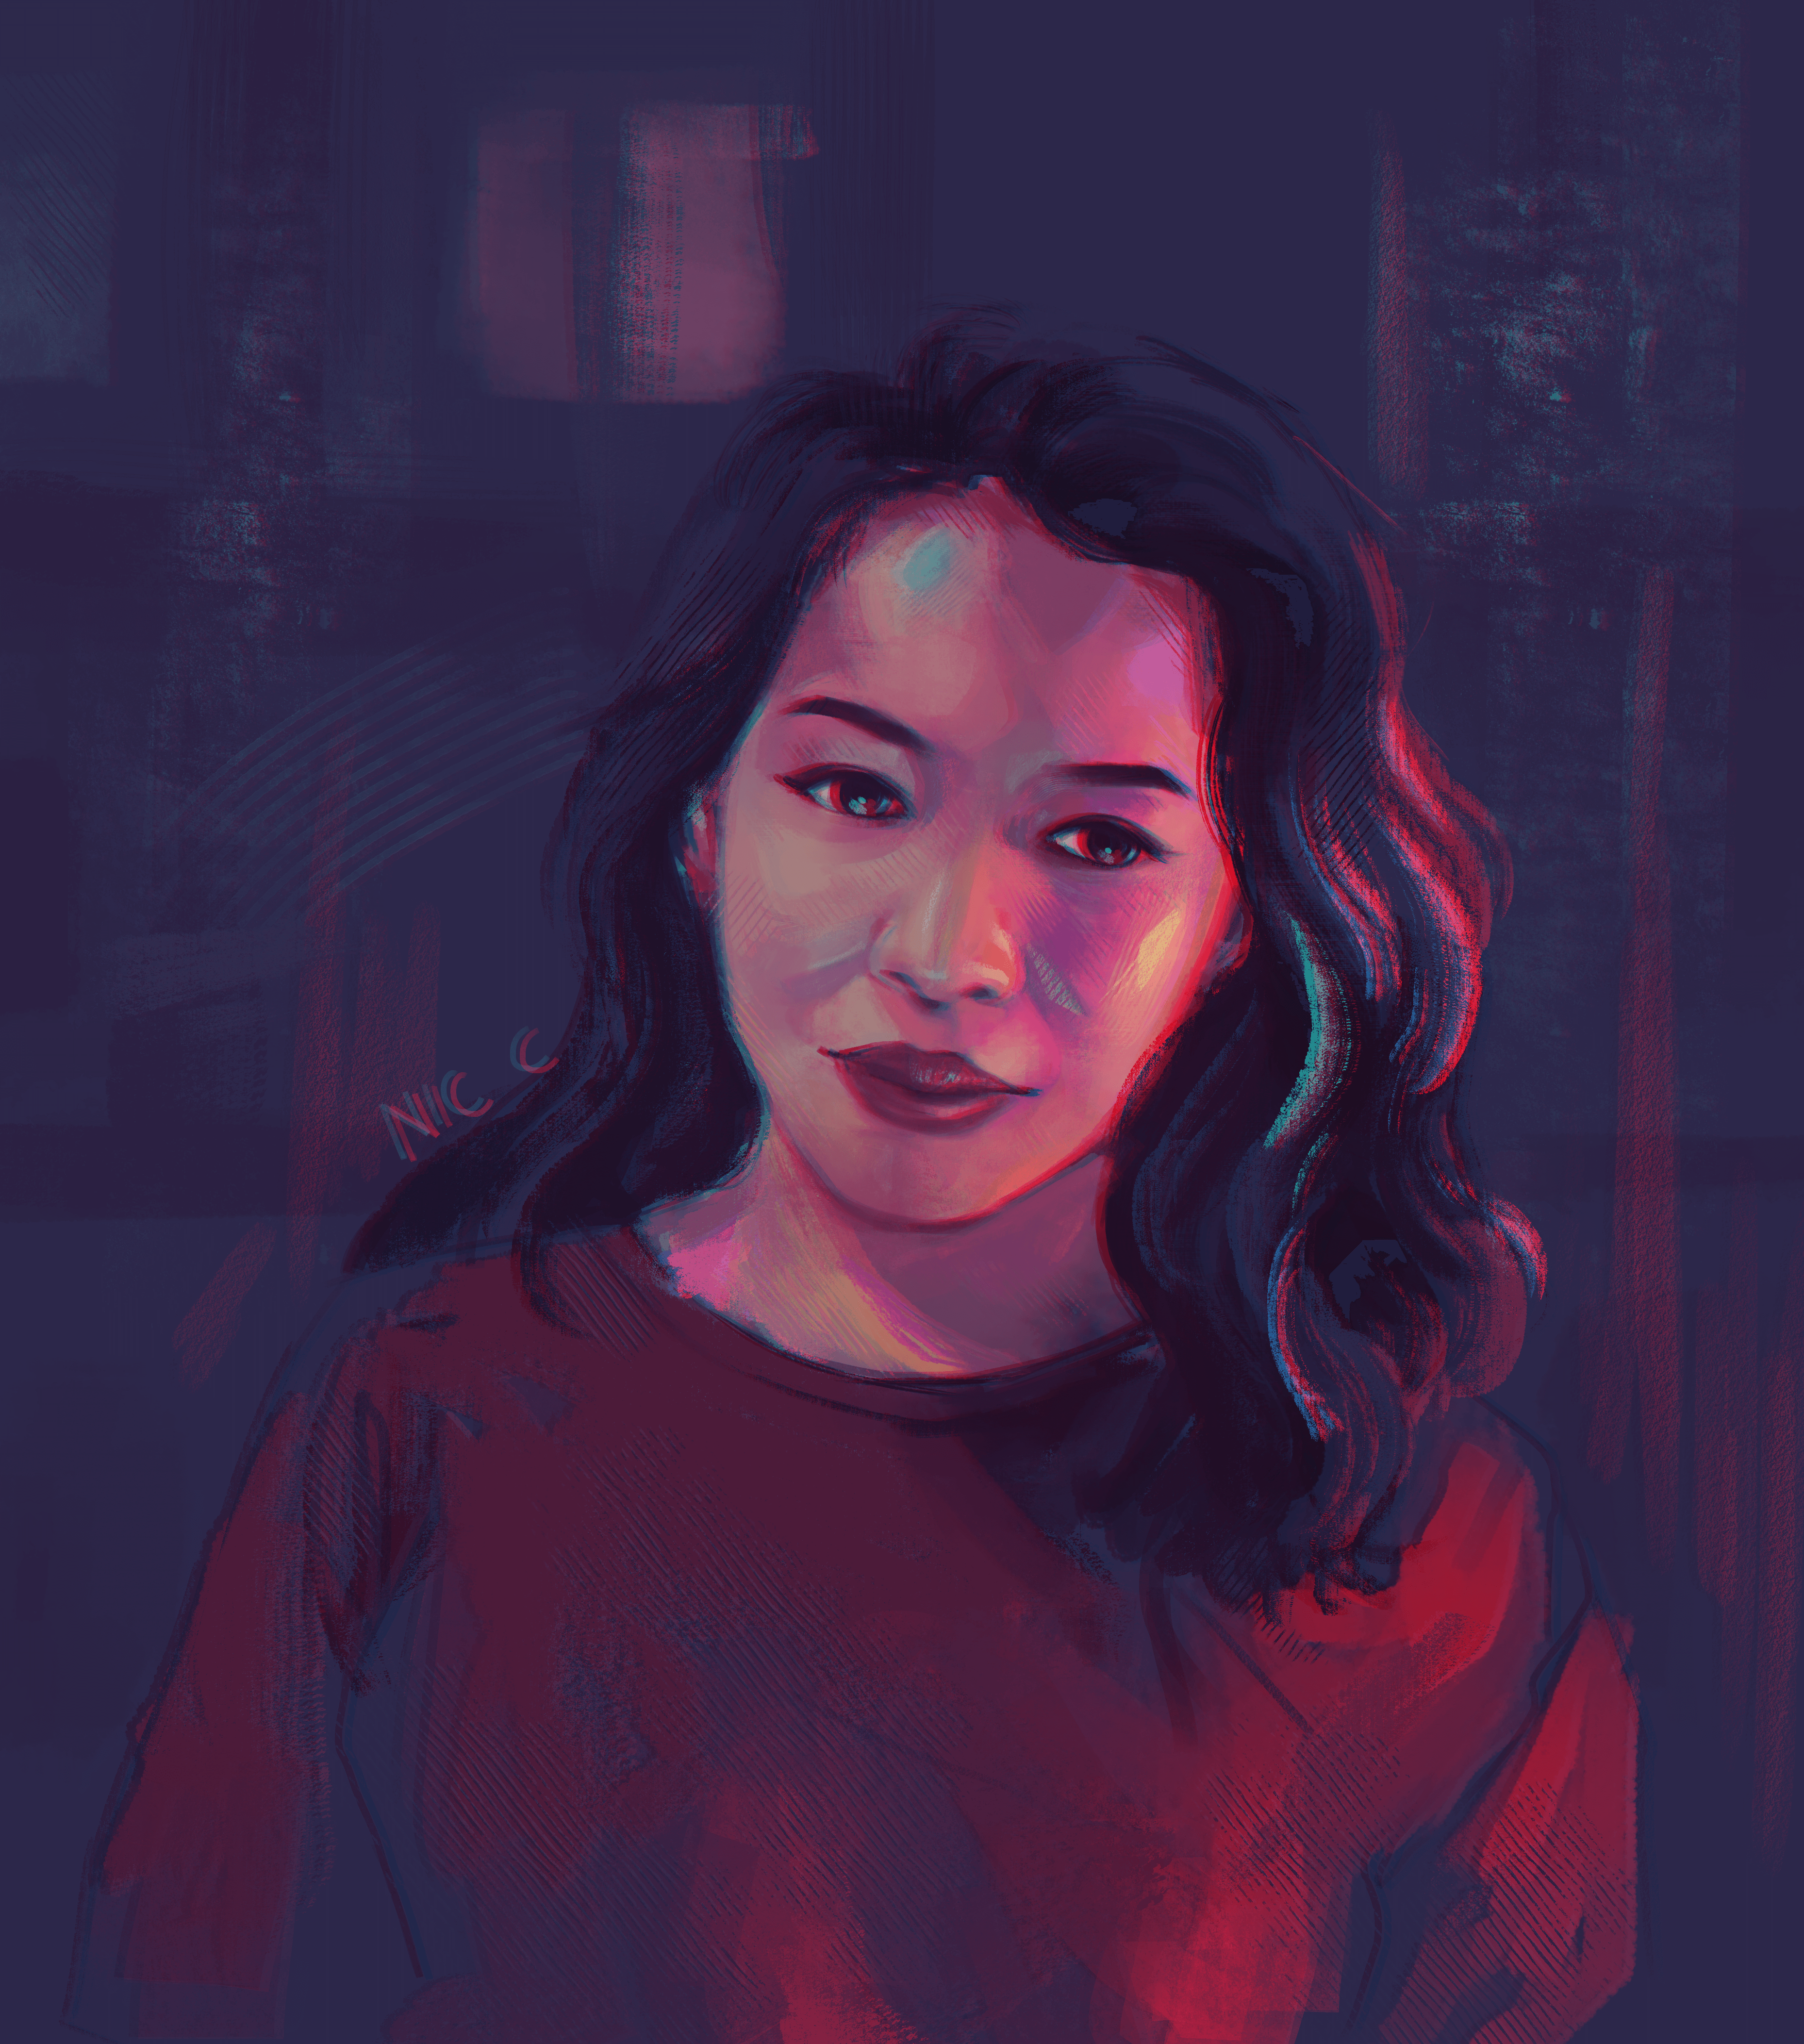 self portrait of Nic Chan painted in purples, pinks and teals